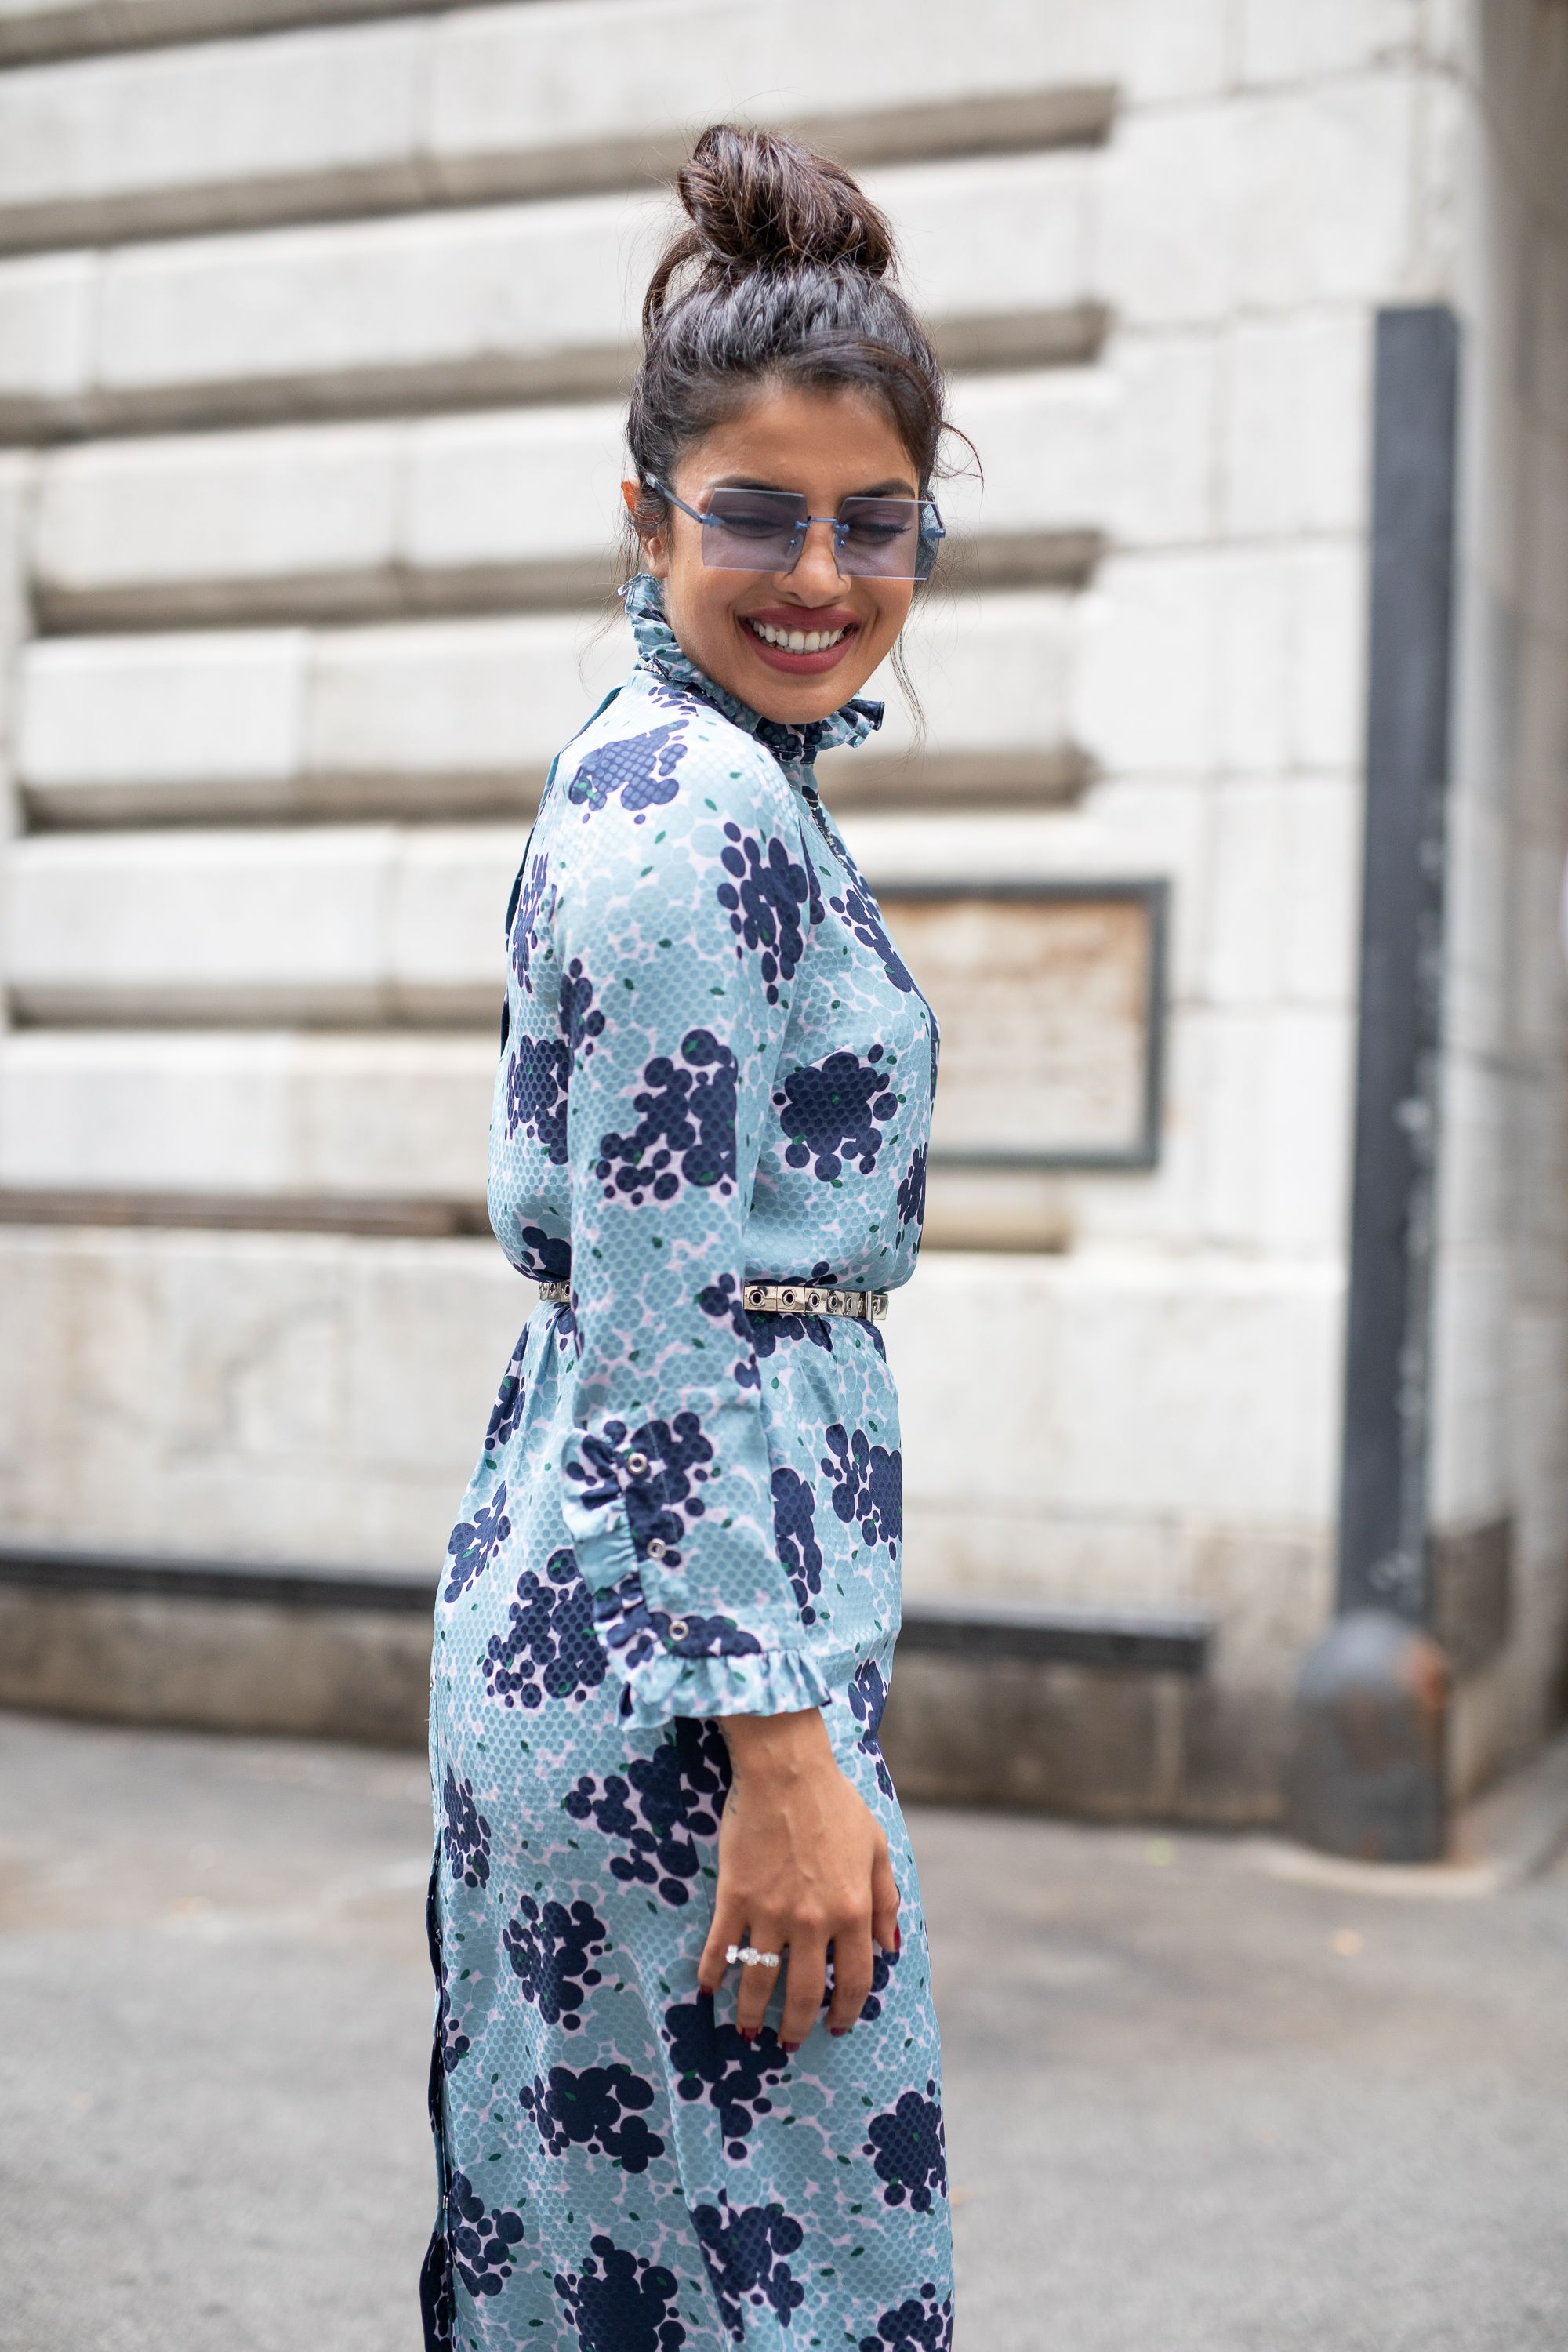 Who Is Priyanka Chopra? | Everything You Need to Know About